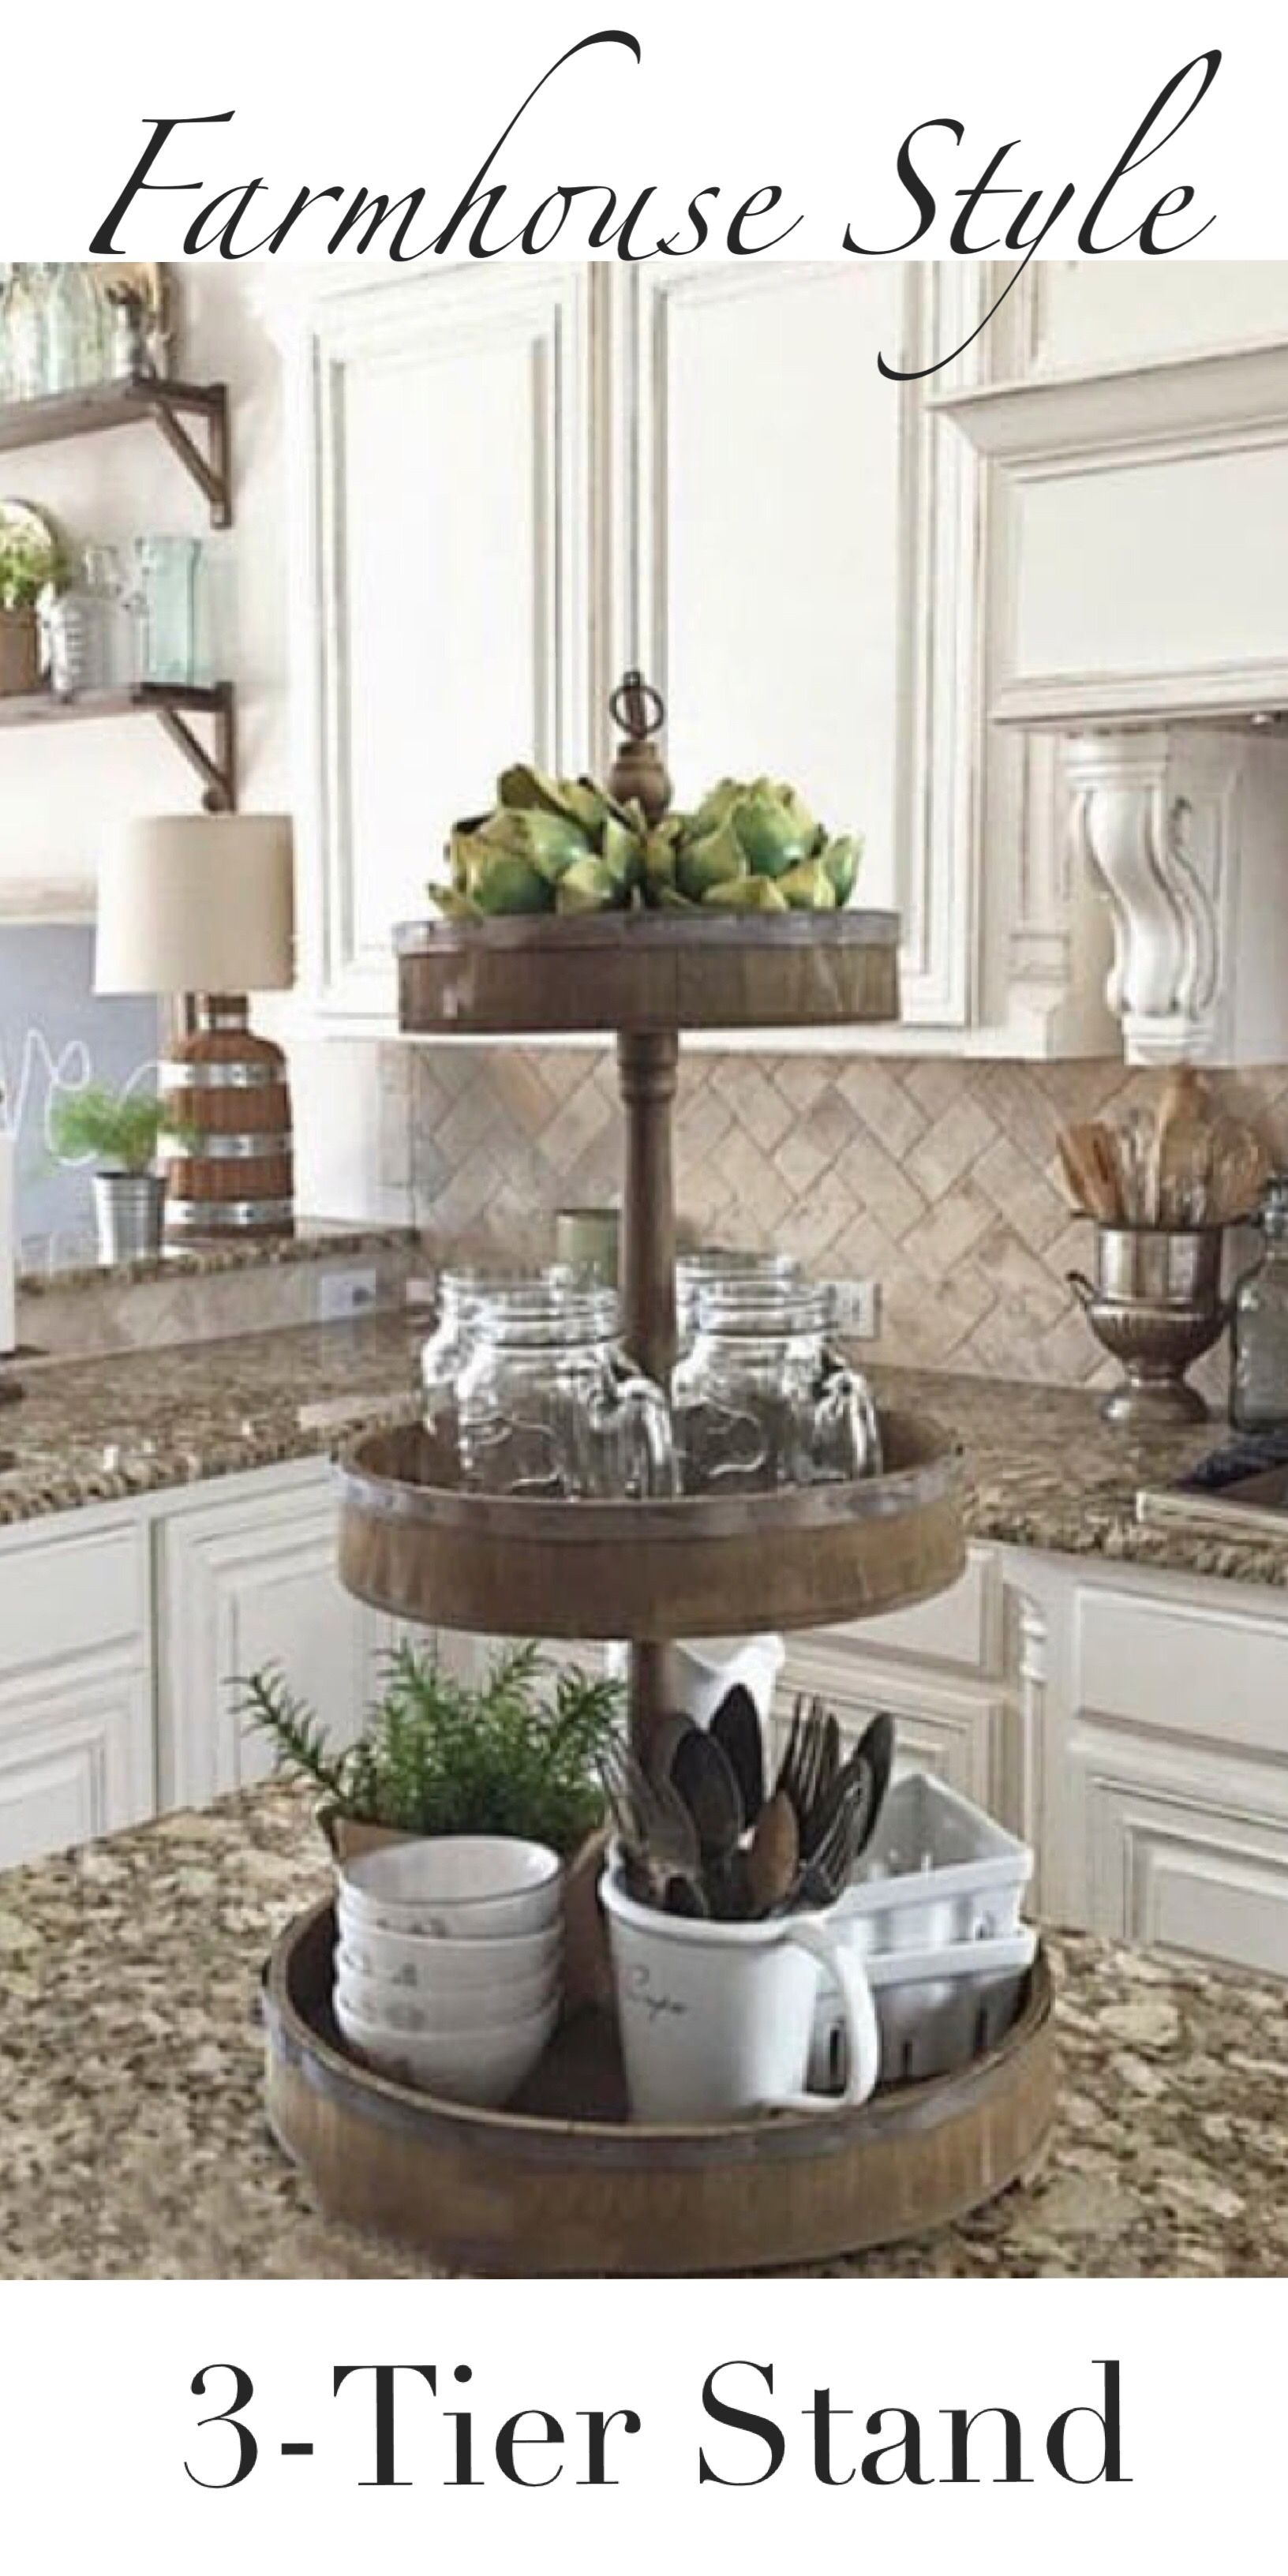 Farmhouse Style 3 Tier Wood Stand Ad Love This Style And This Look Great For The Kitchen Co Kitchen Design Decor Kitchen Island Decor Cottage Kitchen Design